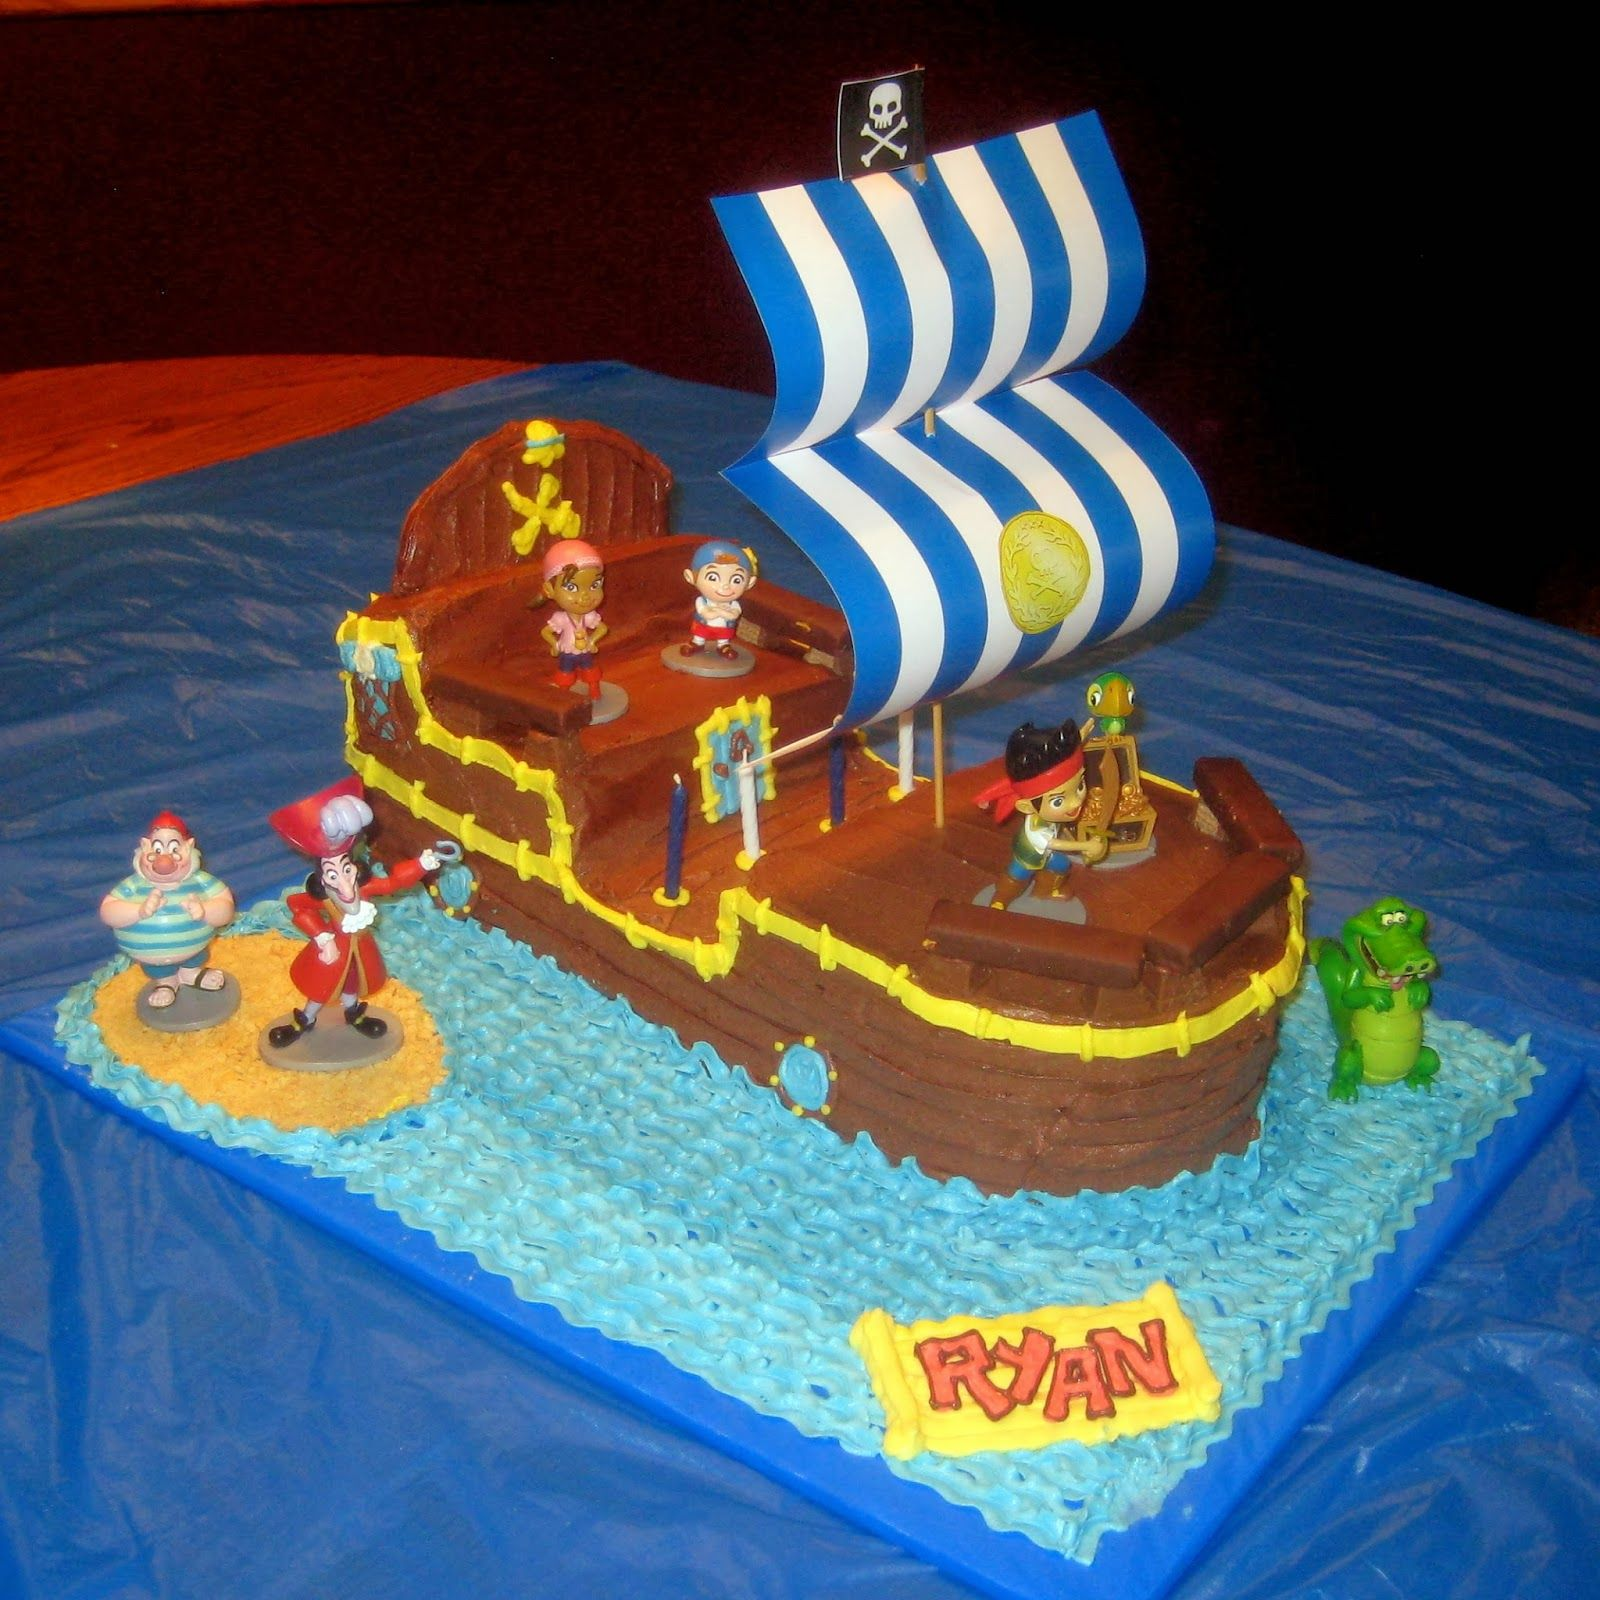 Enjoyable Bucky The Pirate Ship Cake Jake And The Neverland Pirates Funny Birthday Cards Online Inifodamsfinfo